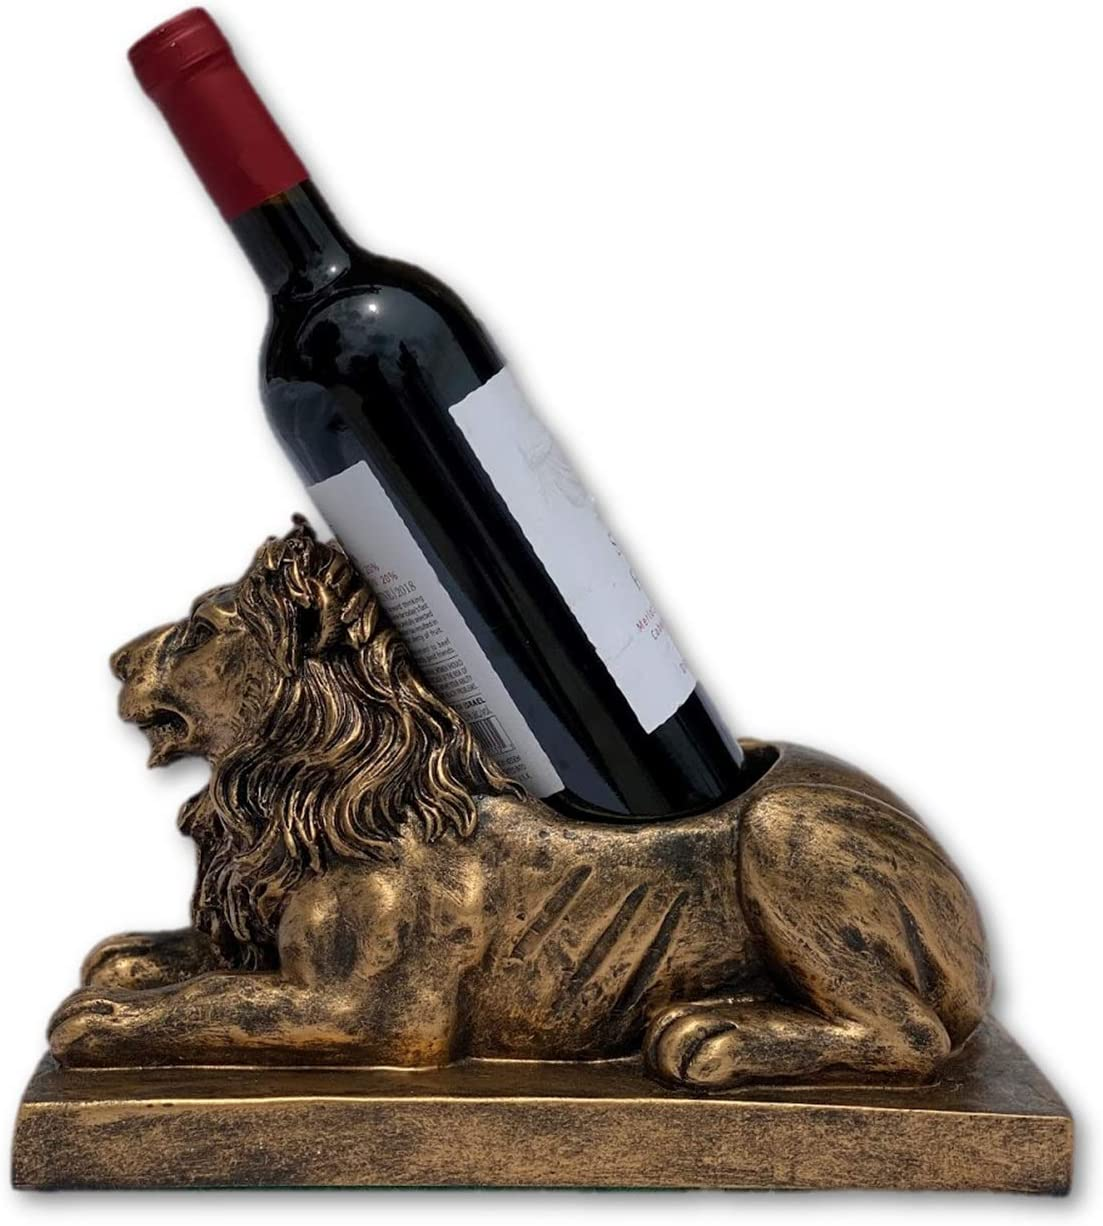 THE NIFTY NOOK | Novelty Lion Wine Bottle Holder | Functional Kitchen Statue | Home Decor | Ideal Gift for The Wine Enthusiast (Lion Wine Bottle Holder)